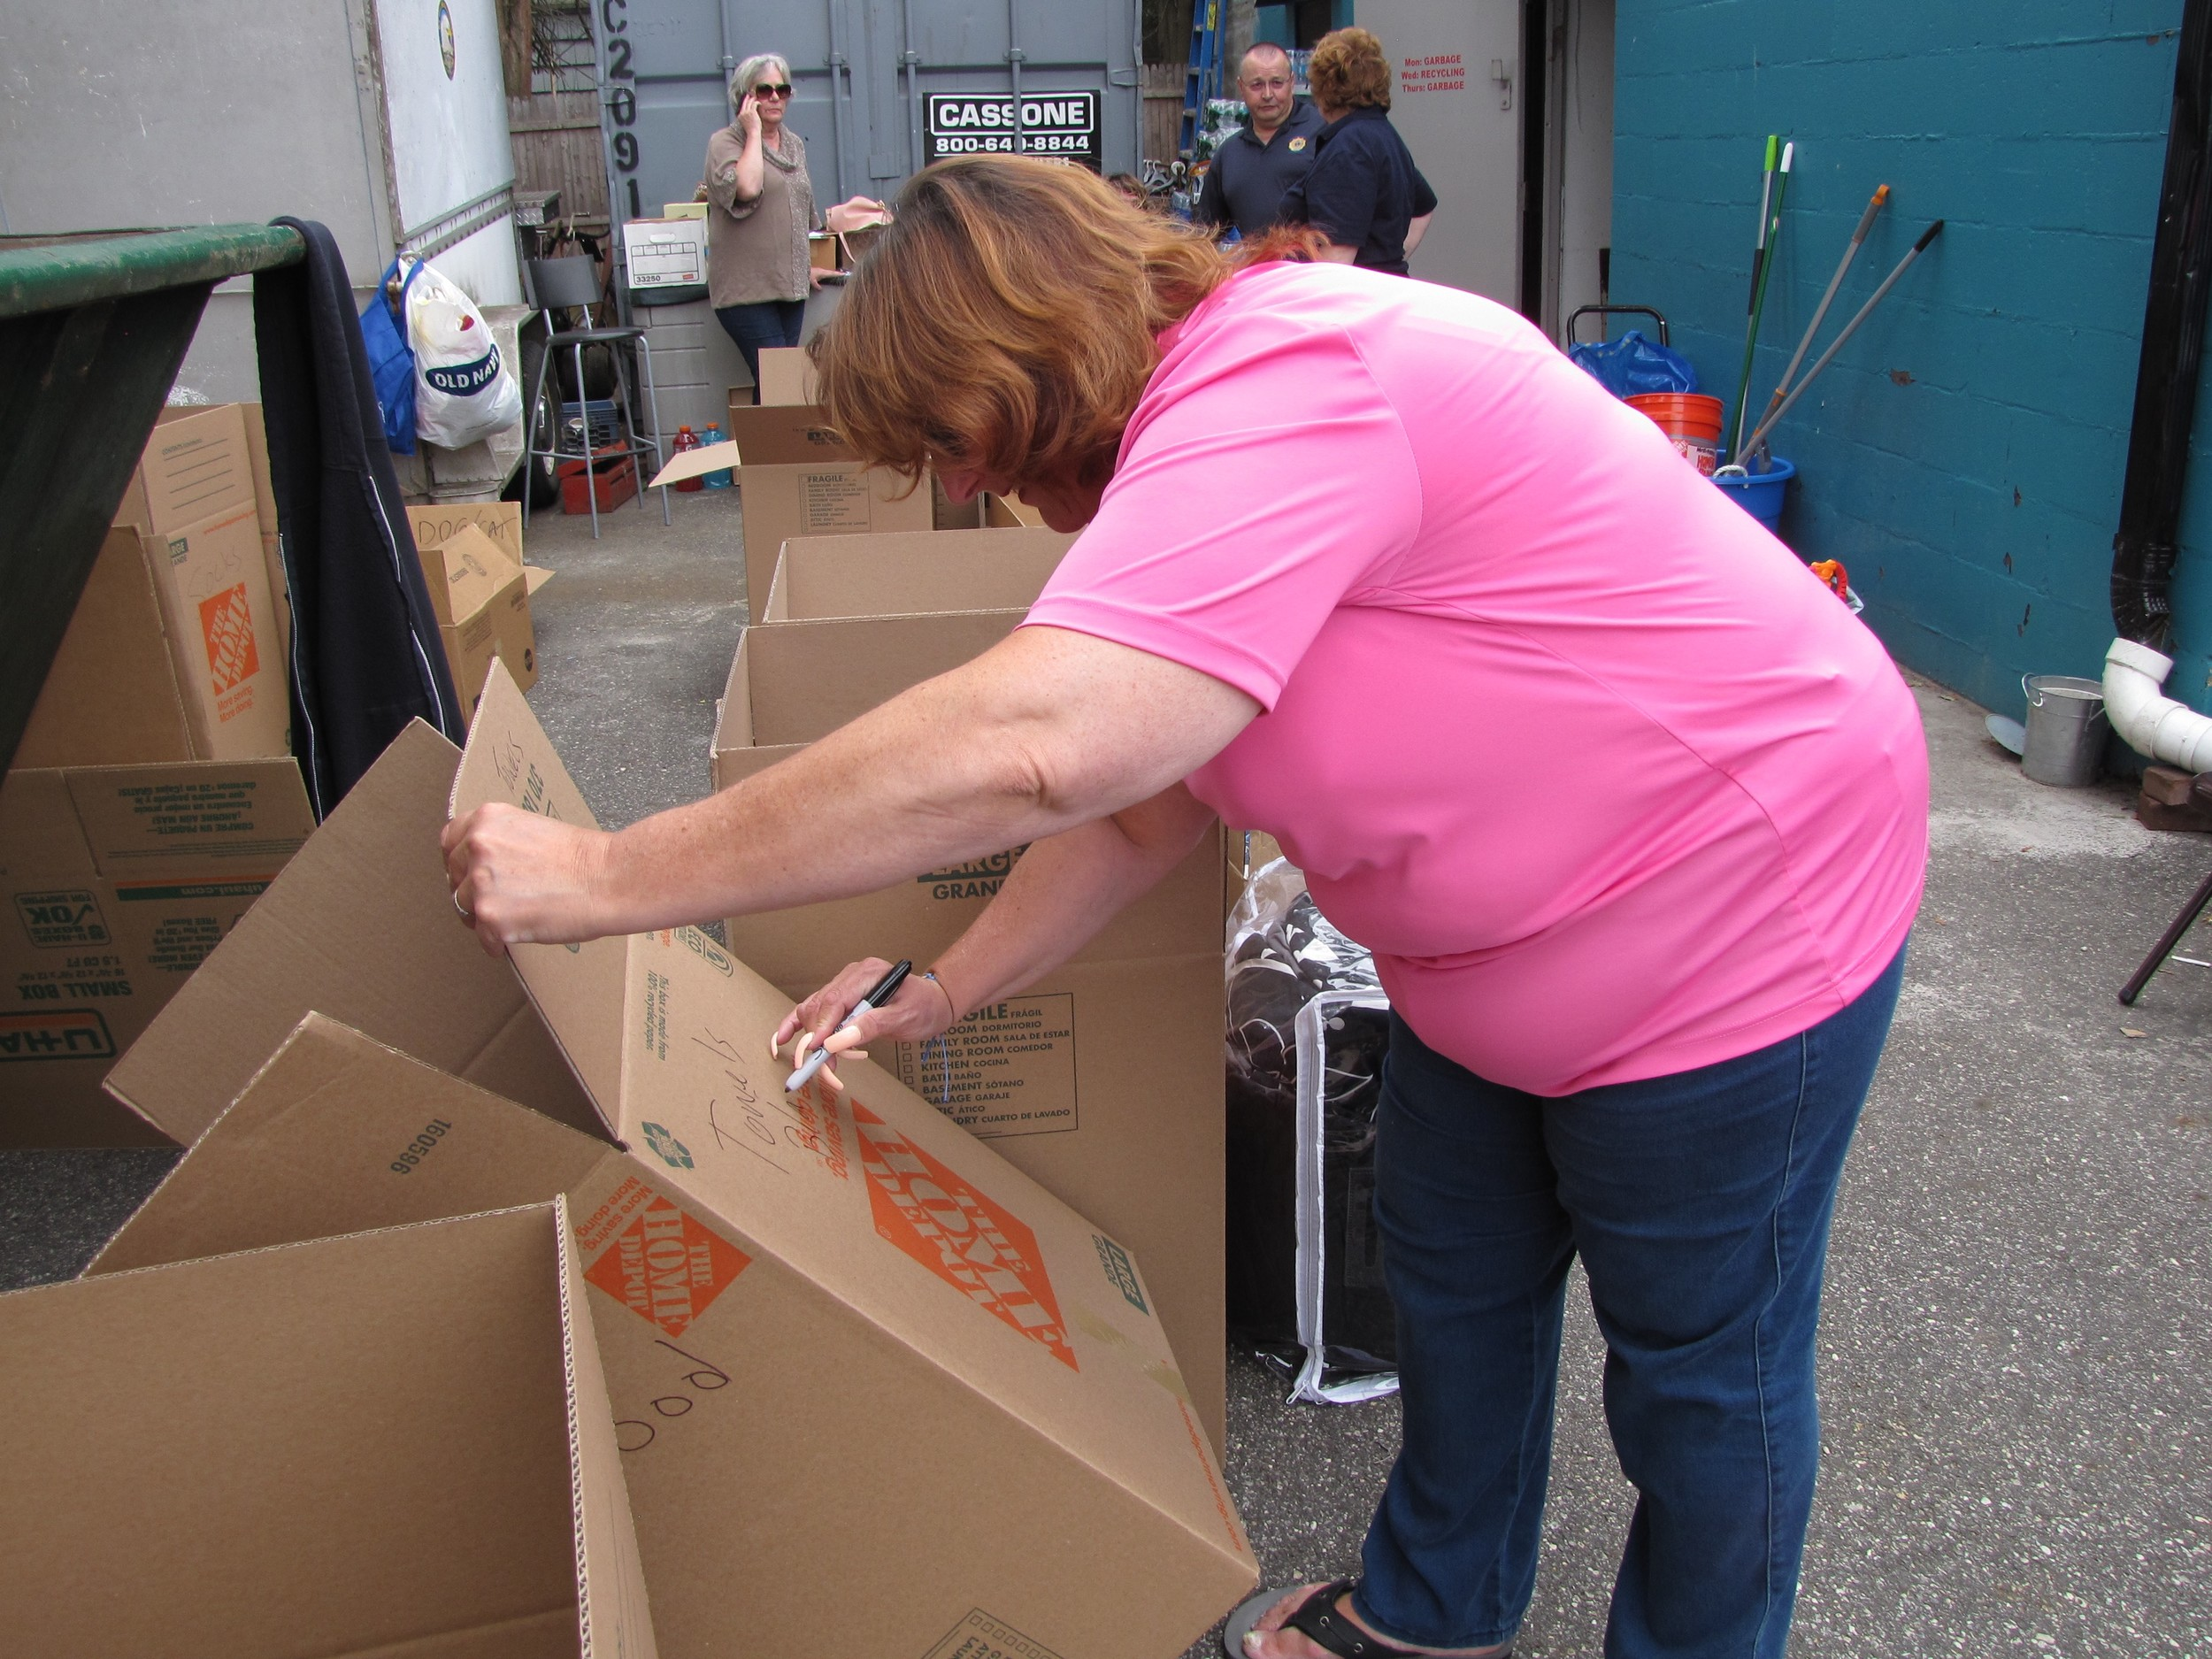 Freeport Lions Club member Sharon Moskowitz labeled a box that was filled with towels during the supply drive on Saturday.